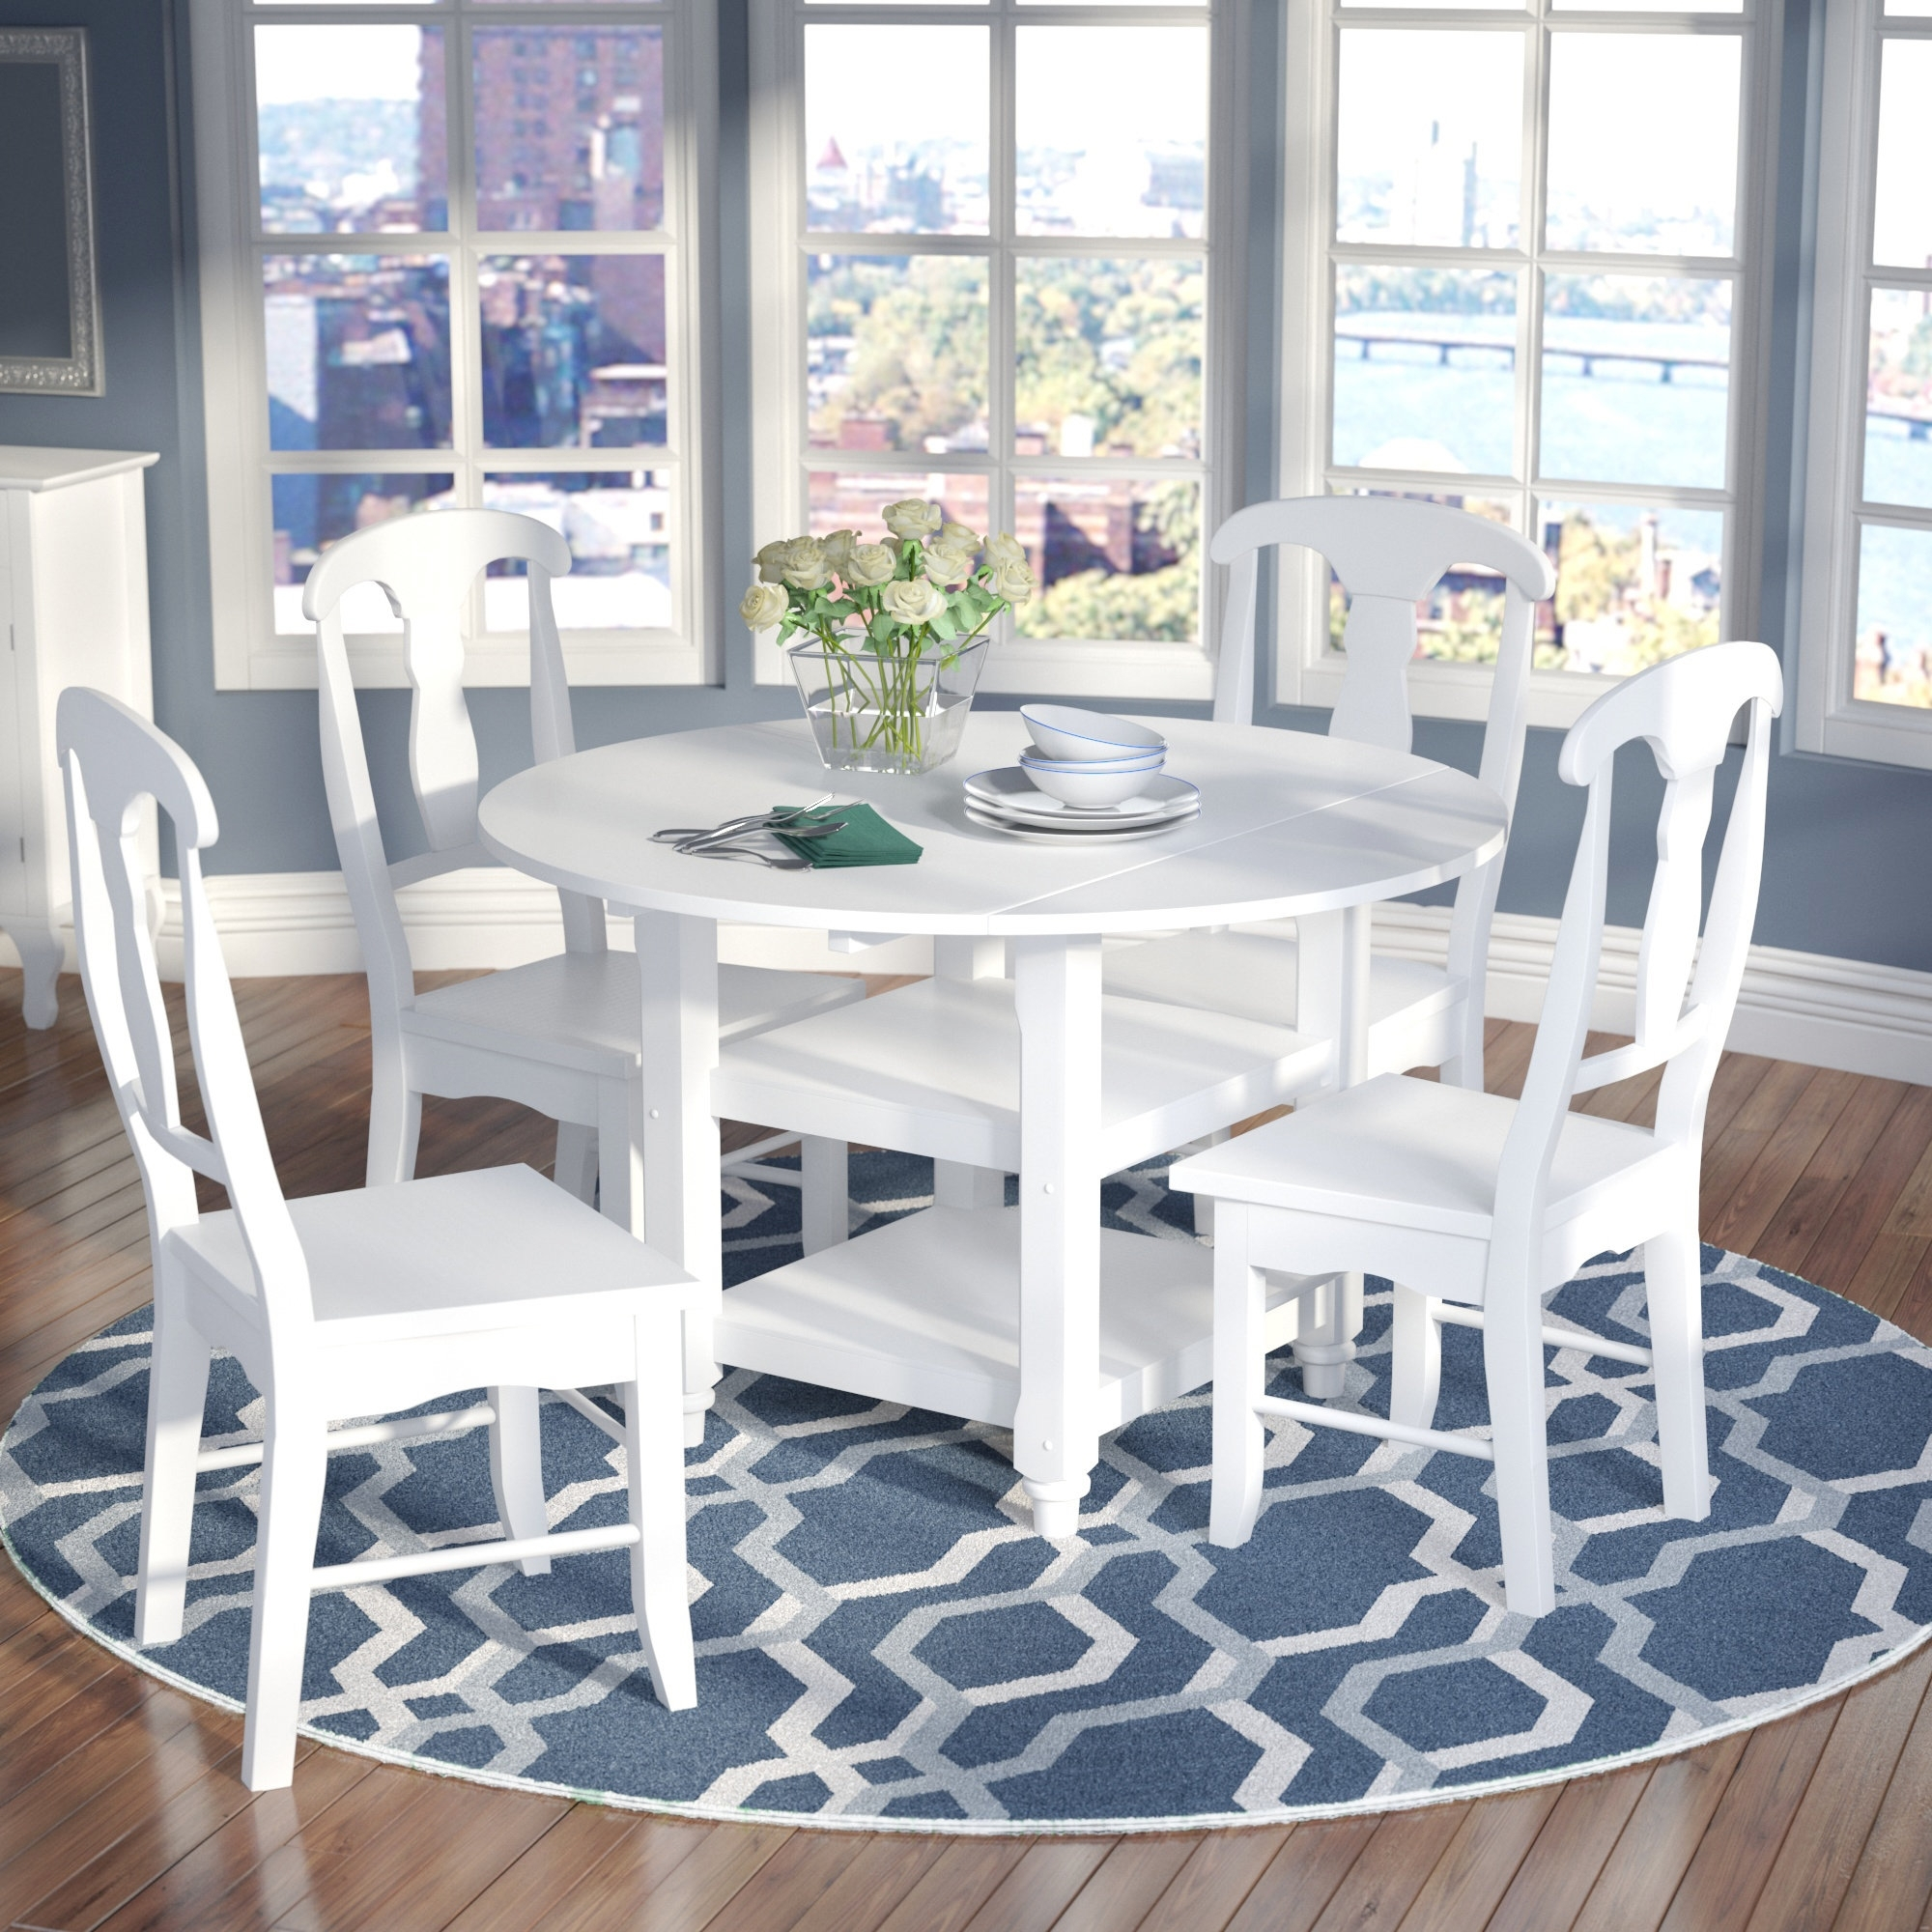 Alcott Hill Harwick 5 Piece Dining Set & Reviews | Wayfair For Recent Jaxon 5 Piece Extension Counter Sets With Fabric Stools (Image 1 of 20)